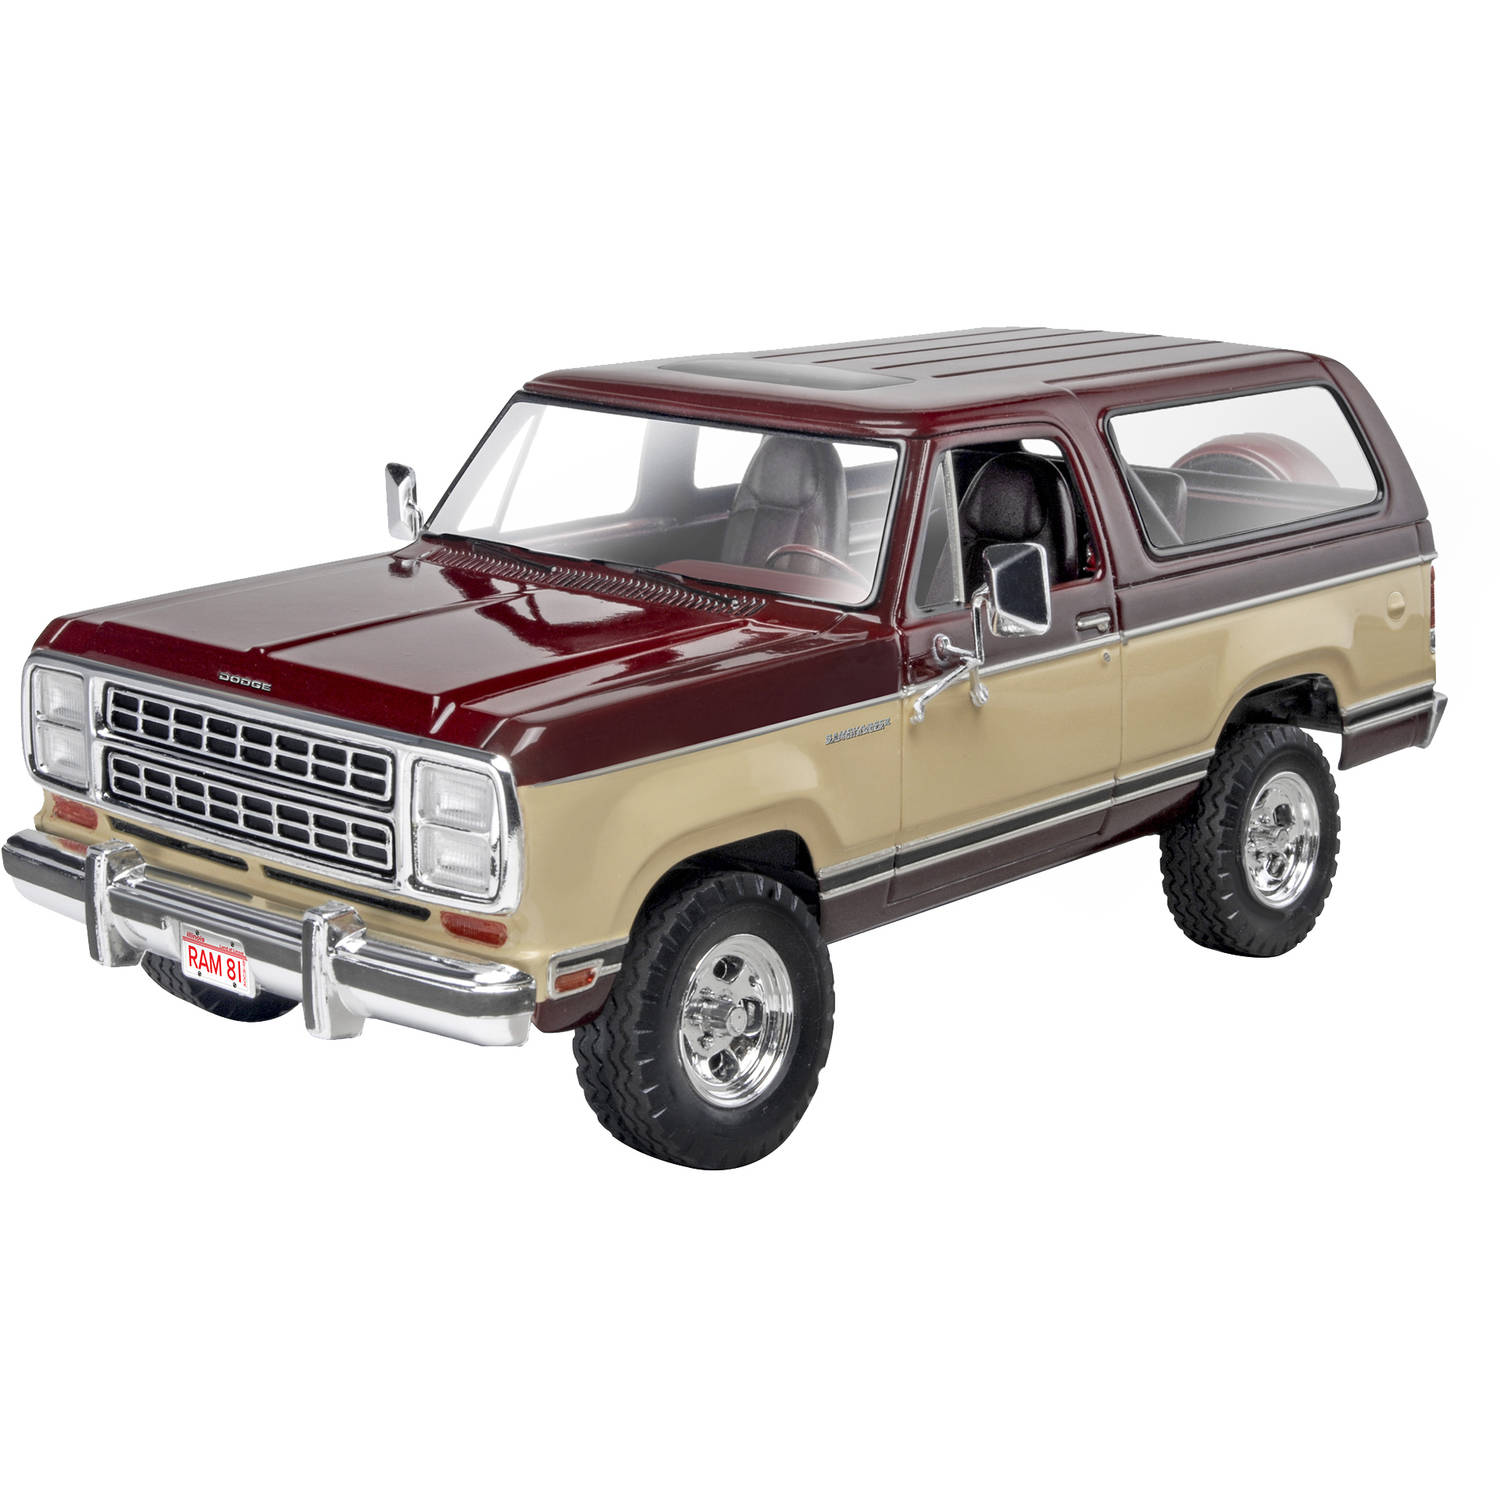 Revell 1:24 1980 Dodge Ramcharger Plastic Model Kit